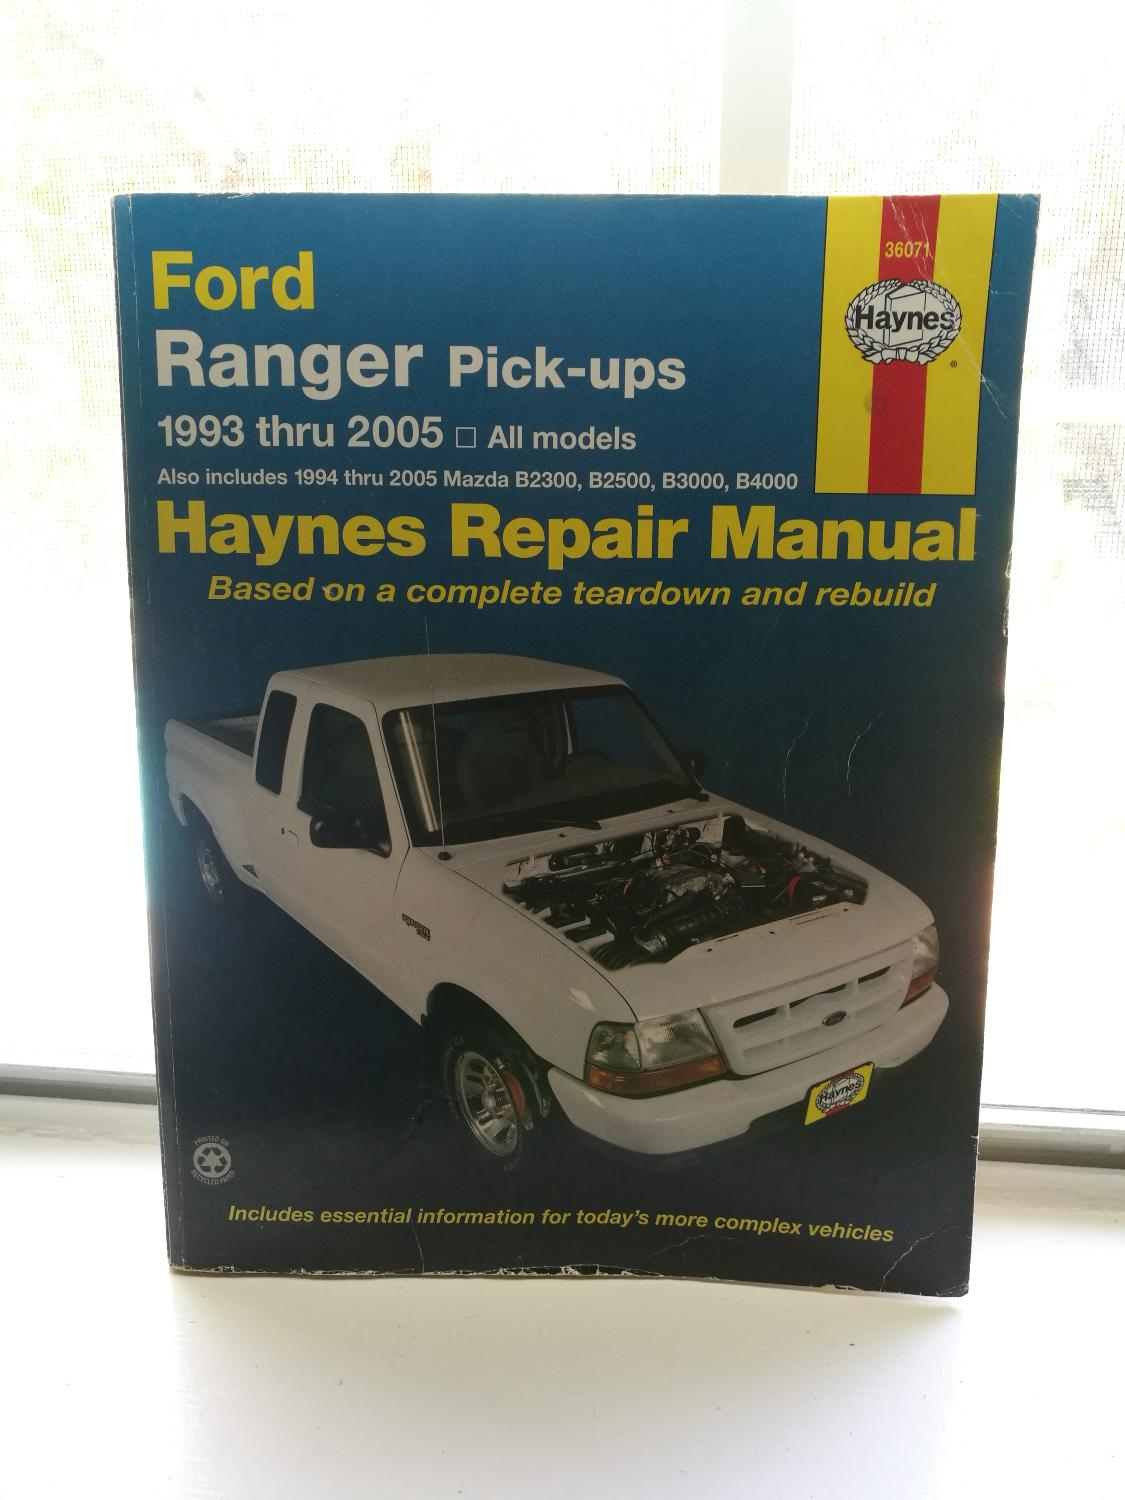 Best Haynes Repair Manual Ford Ranger 93-05 for sale in Brazoria County,  Texas for 2018